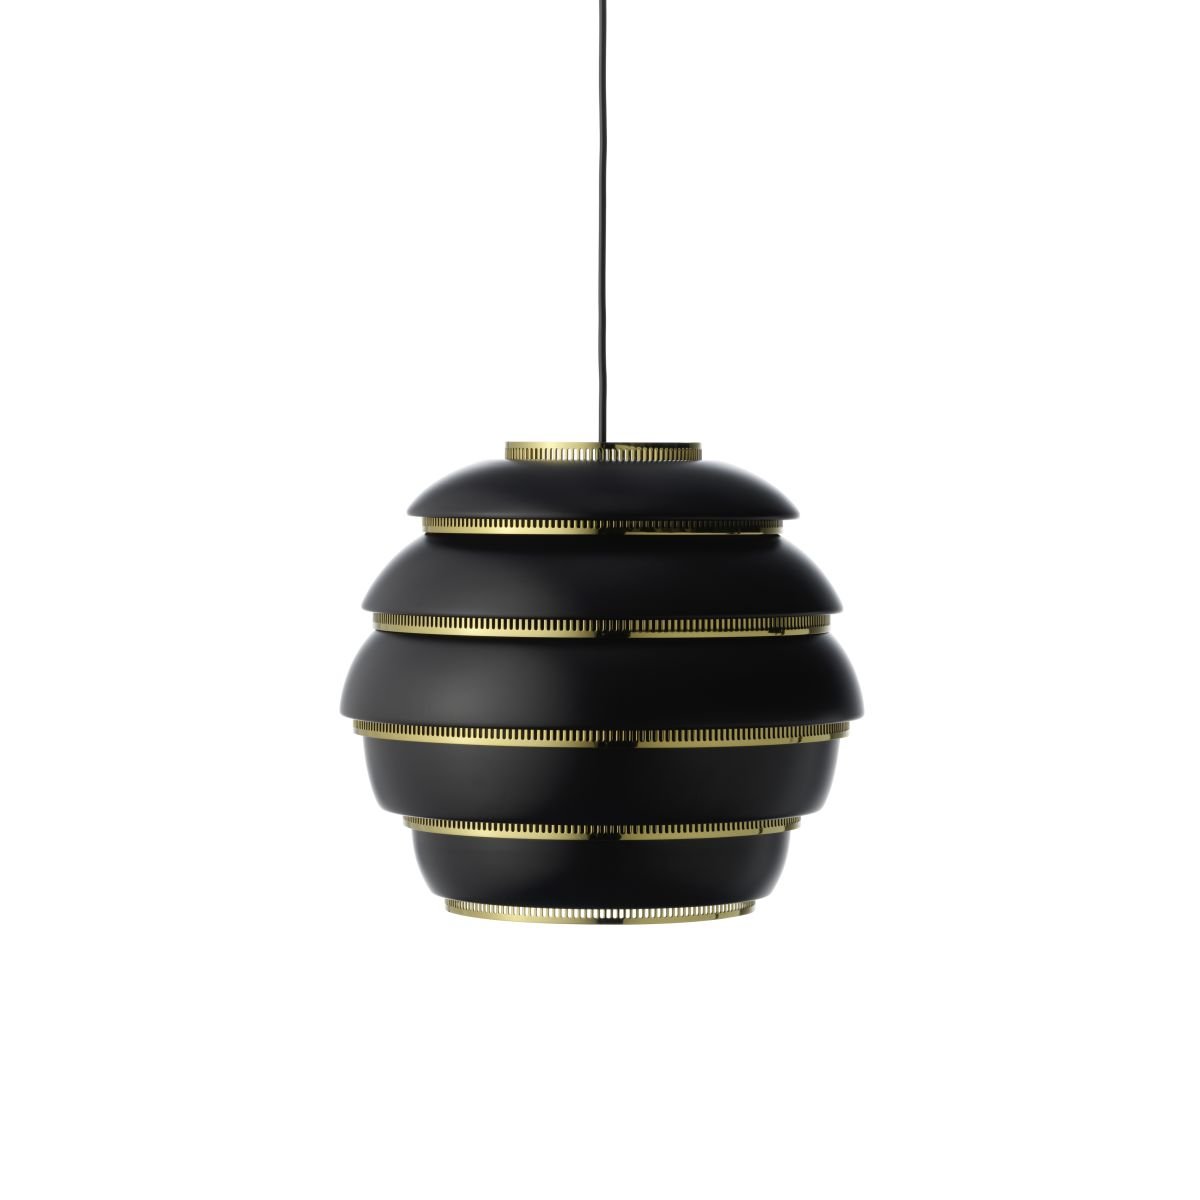 Pendant-Light-A331-_Beehive_-Black_Brass_F-Off_Web-2410890